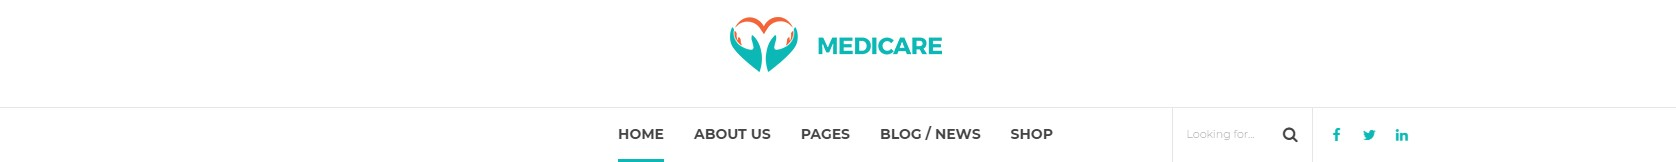 http://documentation.bold-themes.com/medicare/wp-content/uploads/sites/3/2018/03/menu-type-hCenterBelowLogo.jpg